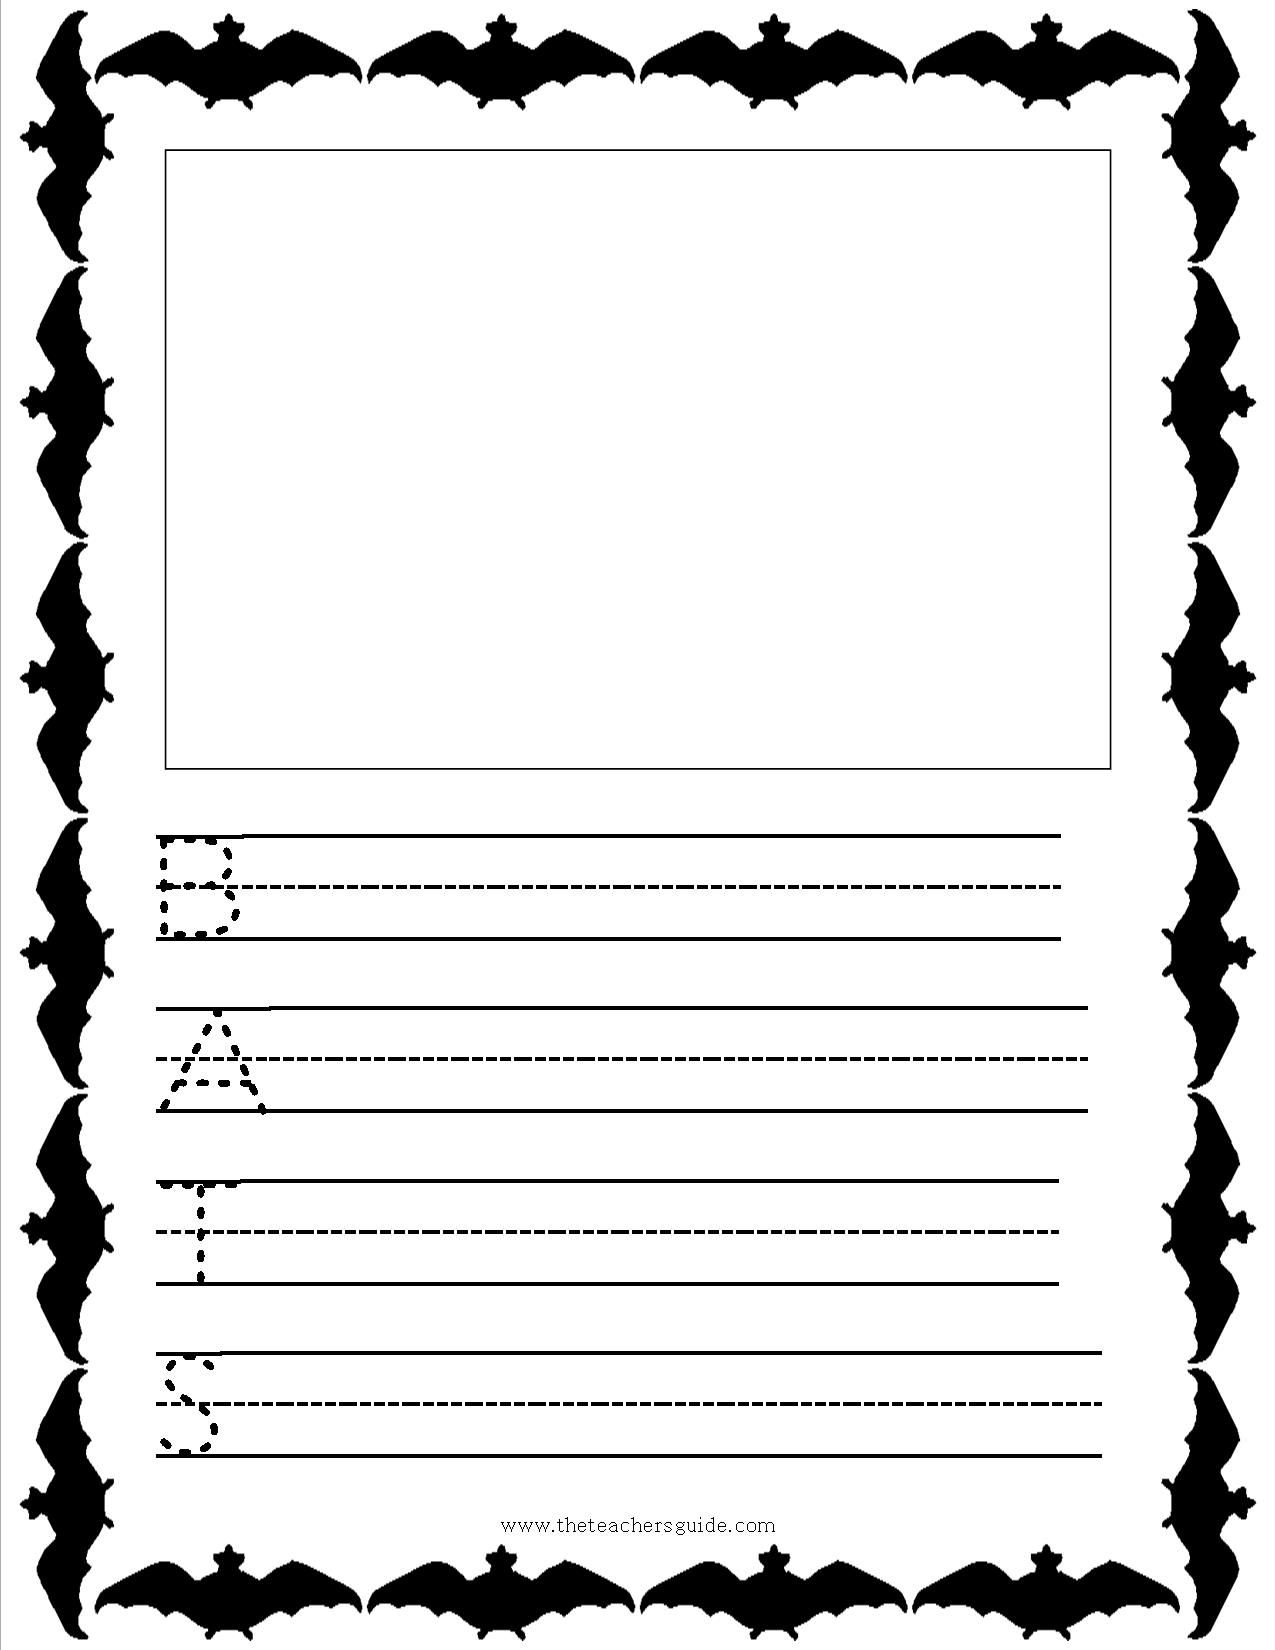 Pin By Reshina George On English Poetry Worksheets Acrostic Poem Acrostic